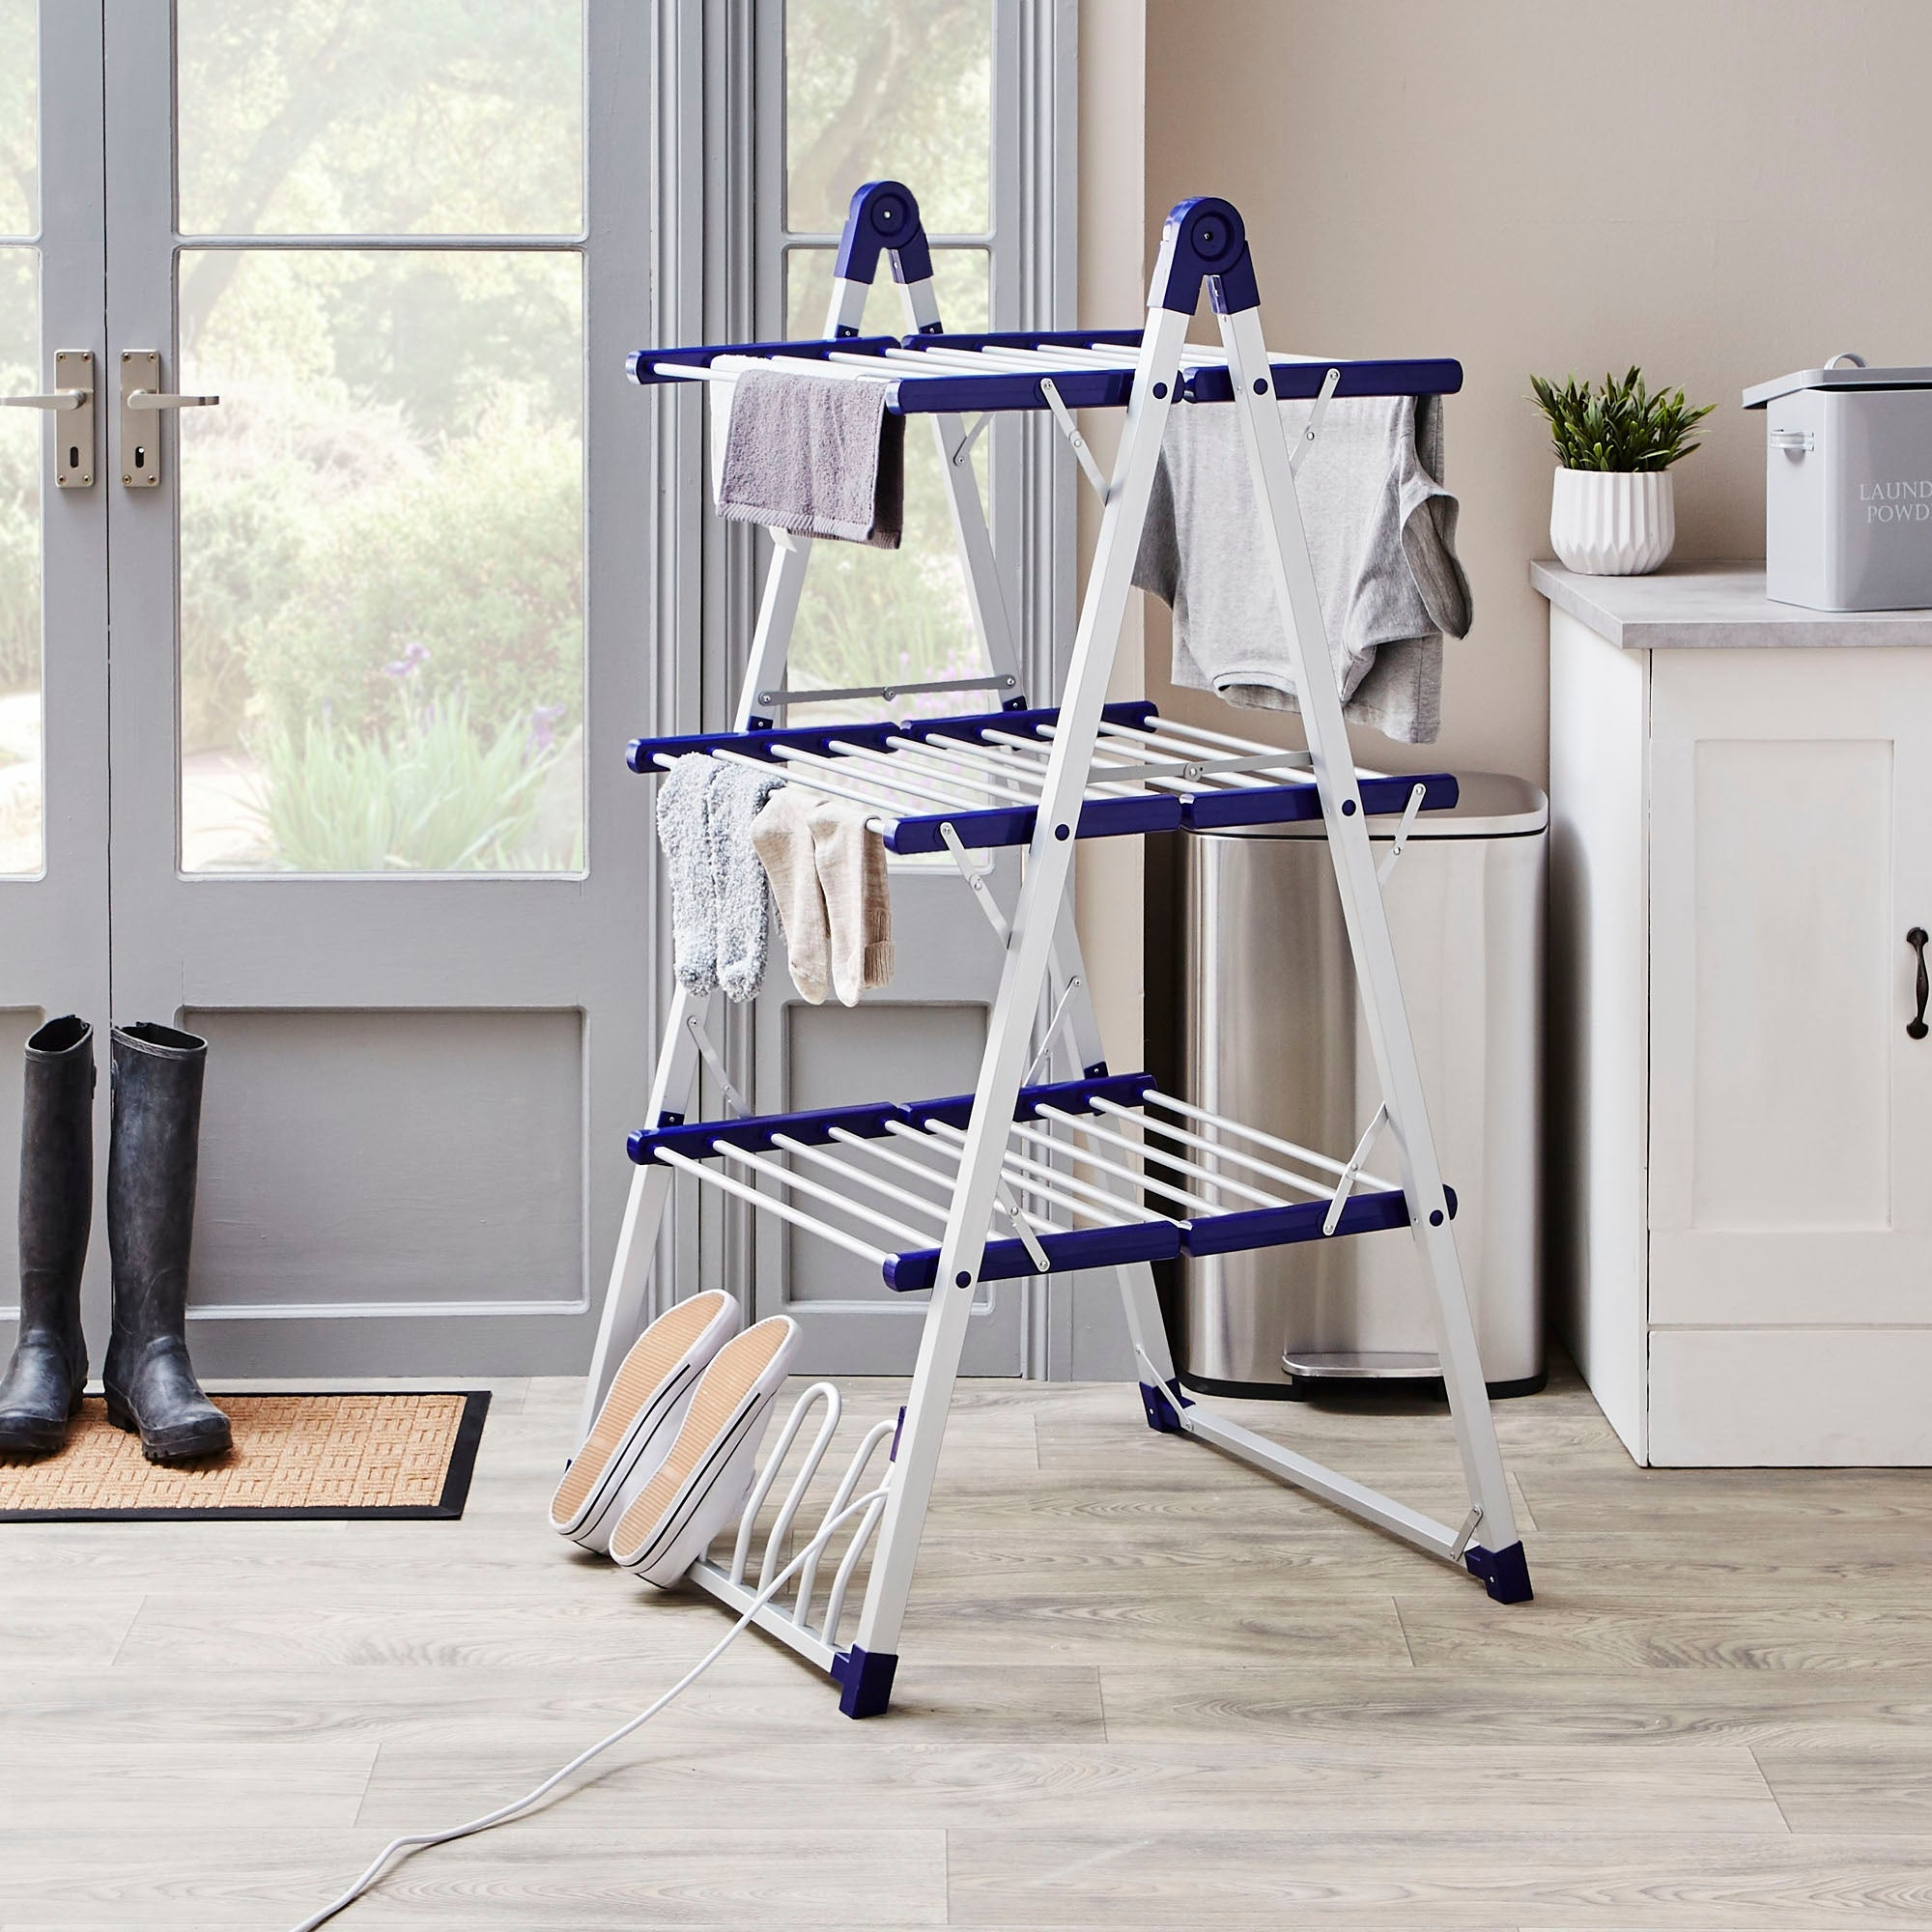 Image of 3-Tier Heated Airer Grey